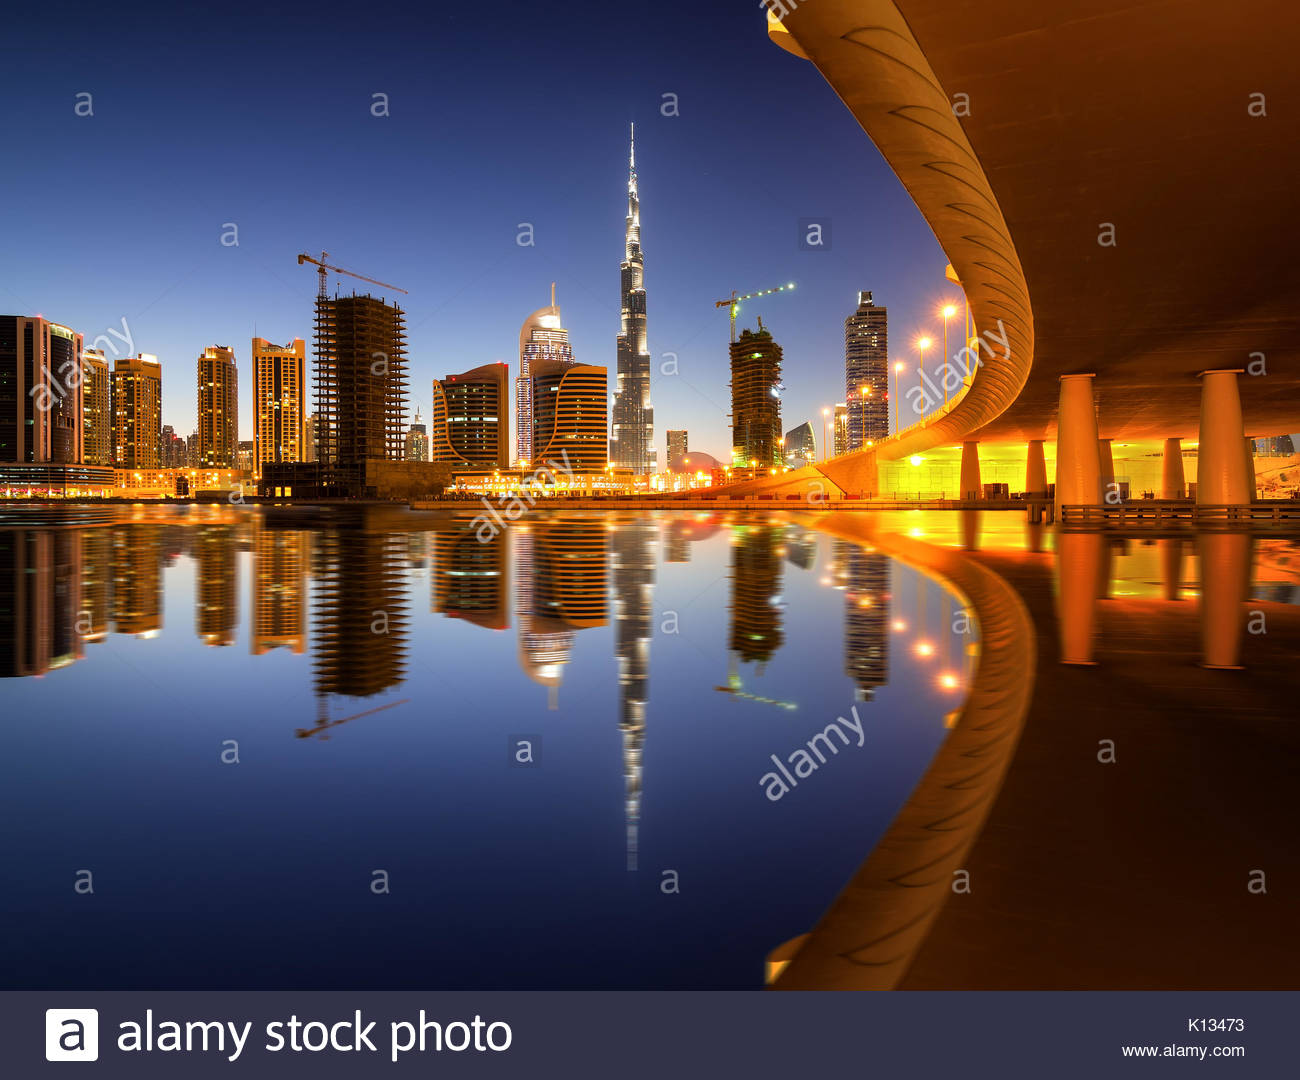 Fascinating reflection of tallest skyscrapers in Business Bay district during colorfull sunset near amazing bridge. - Stock Image